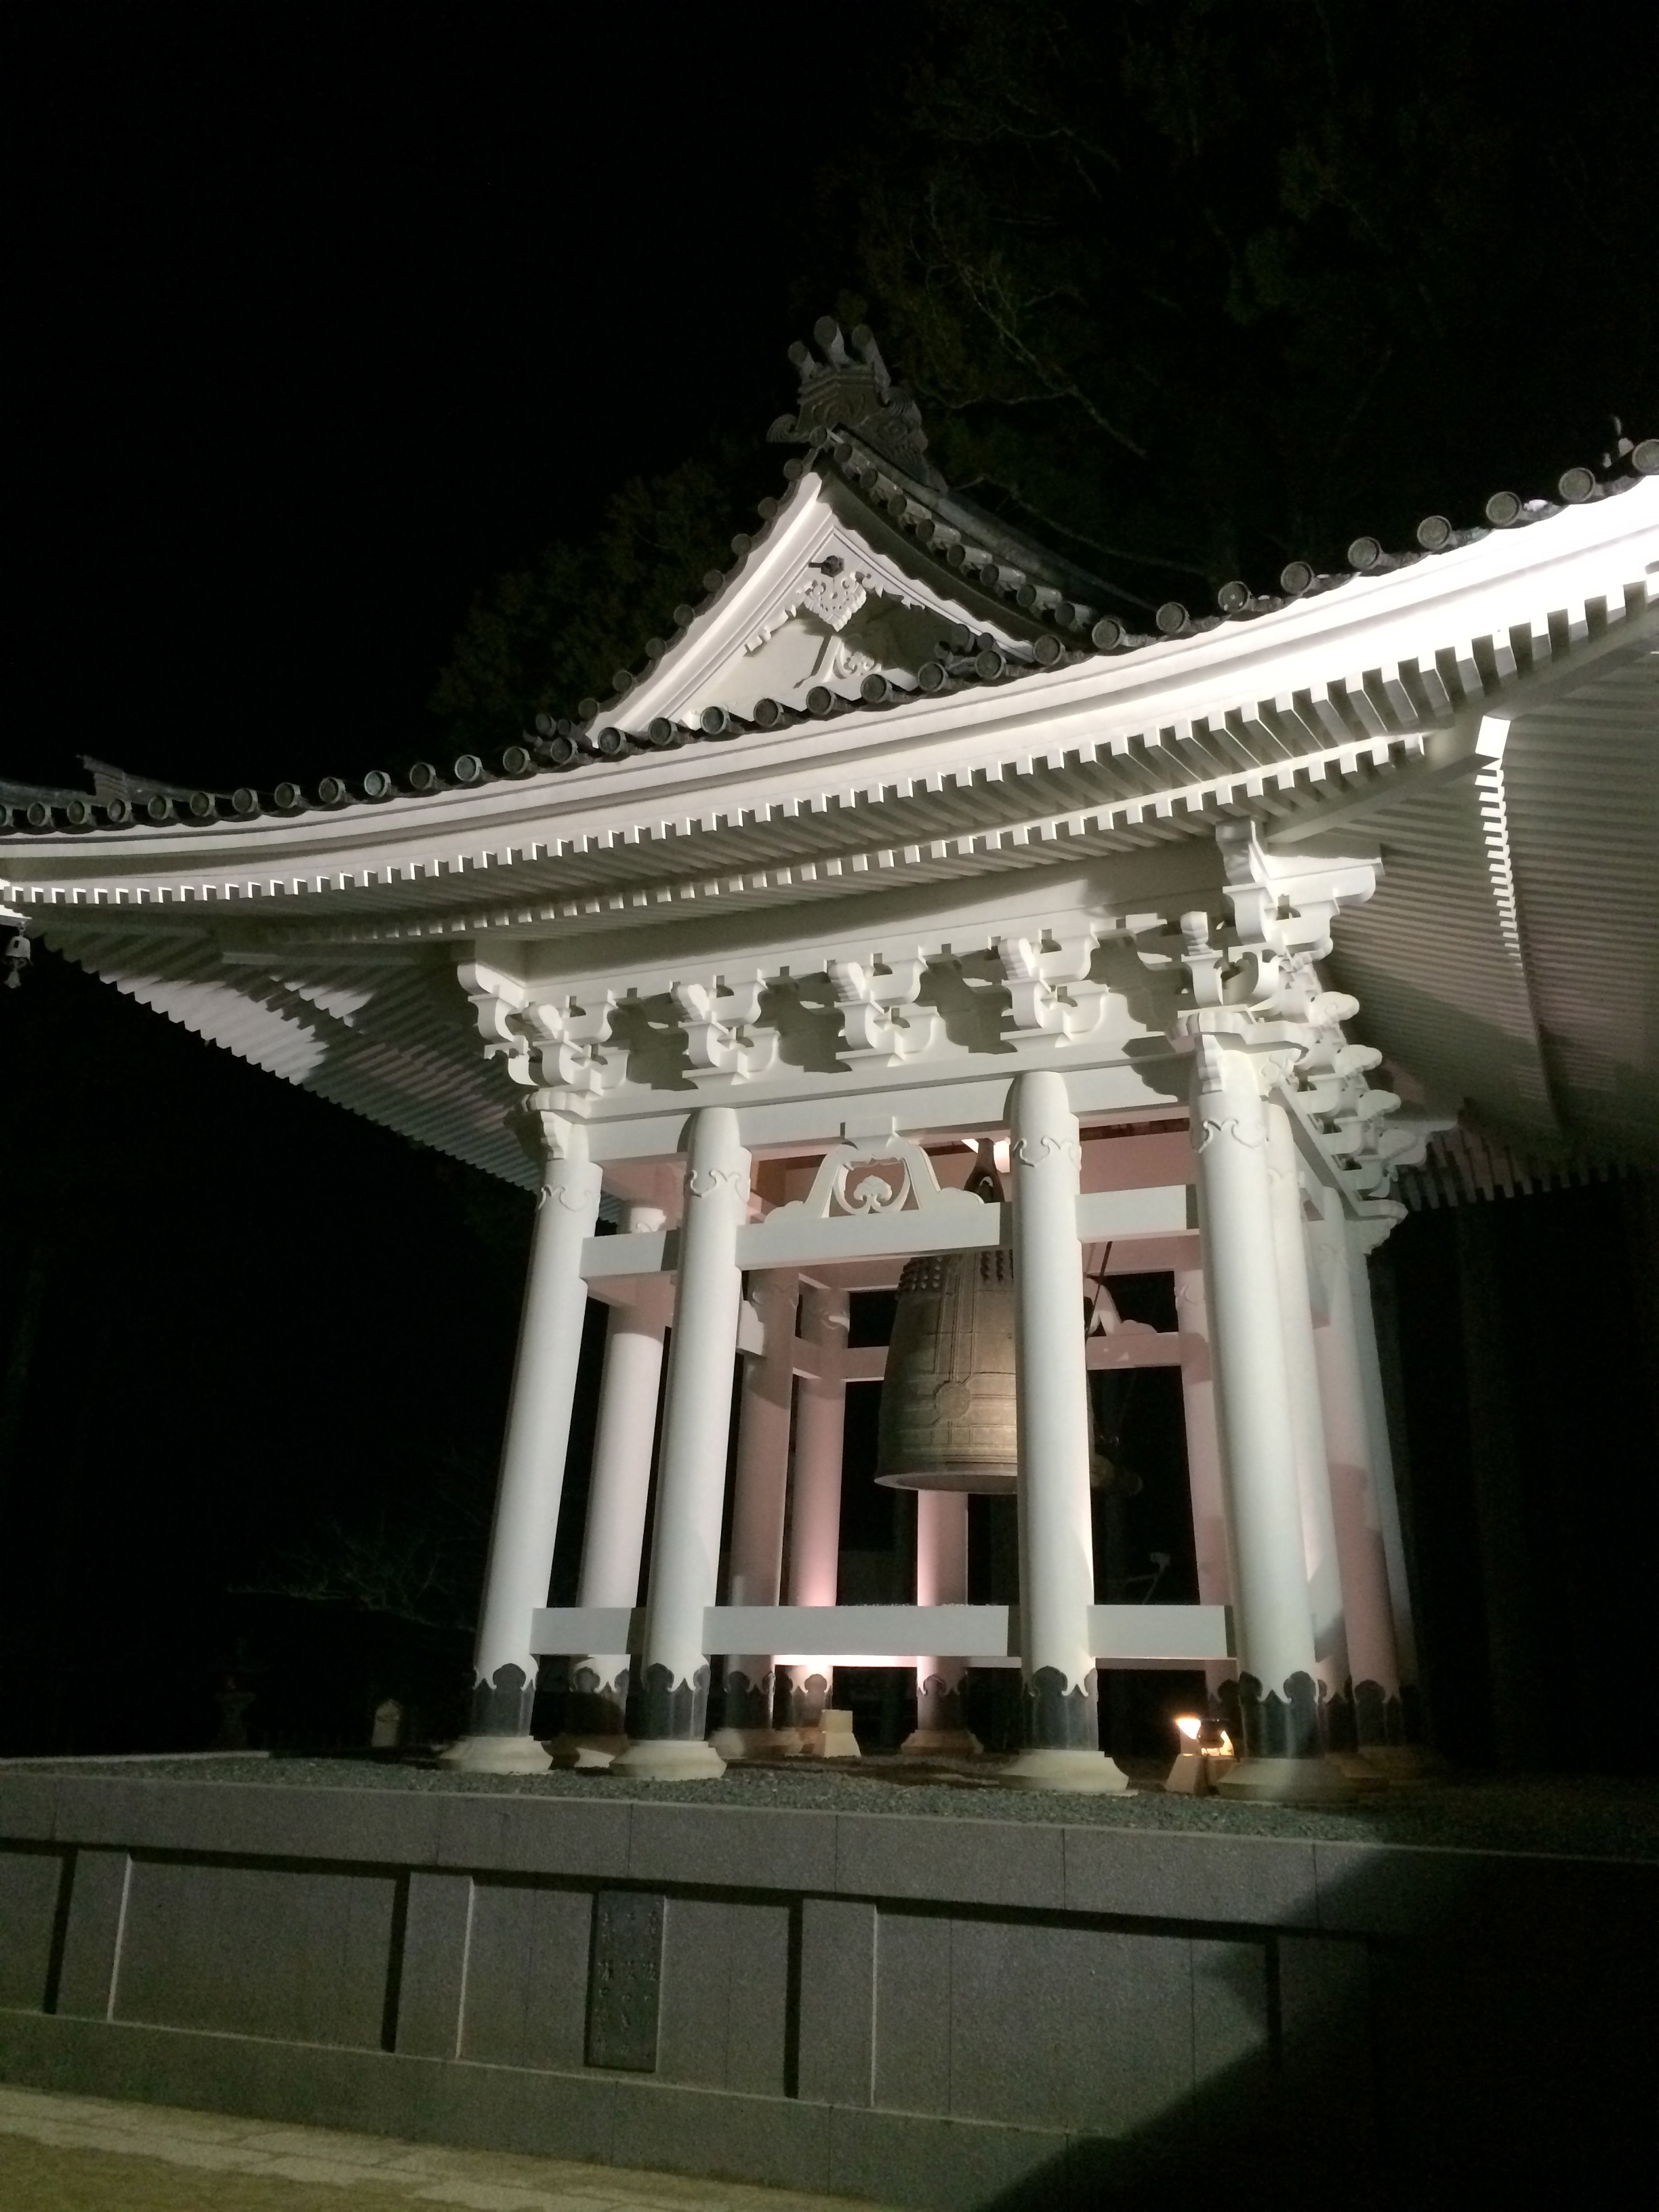 ZoomVacationsJapanMtKoyaTemple.jpg